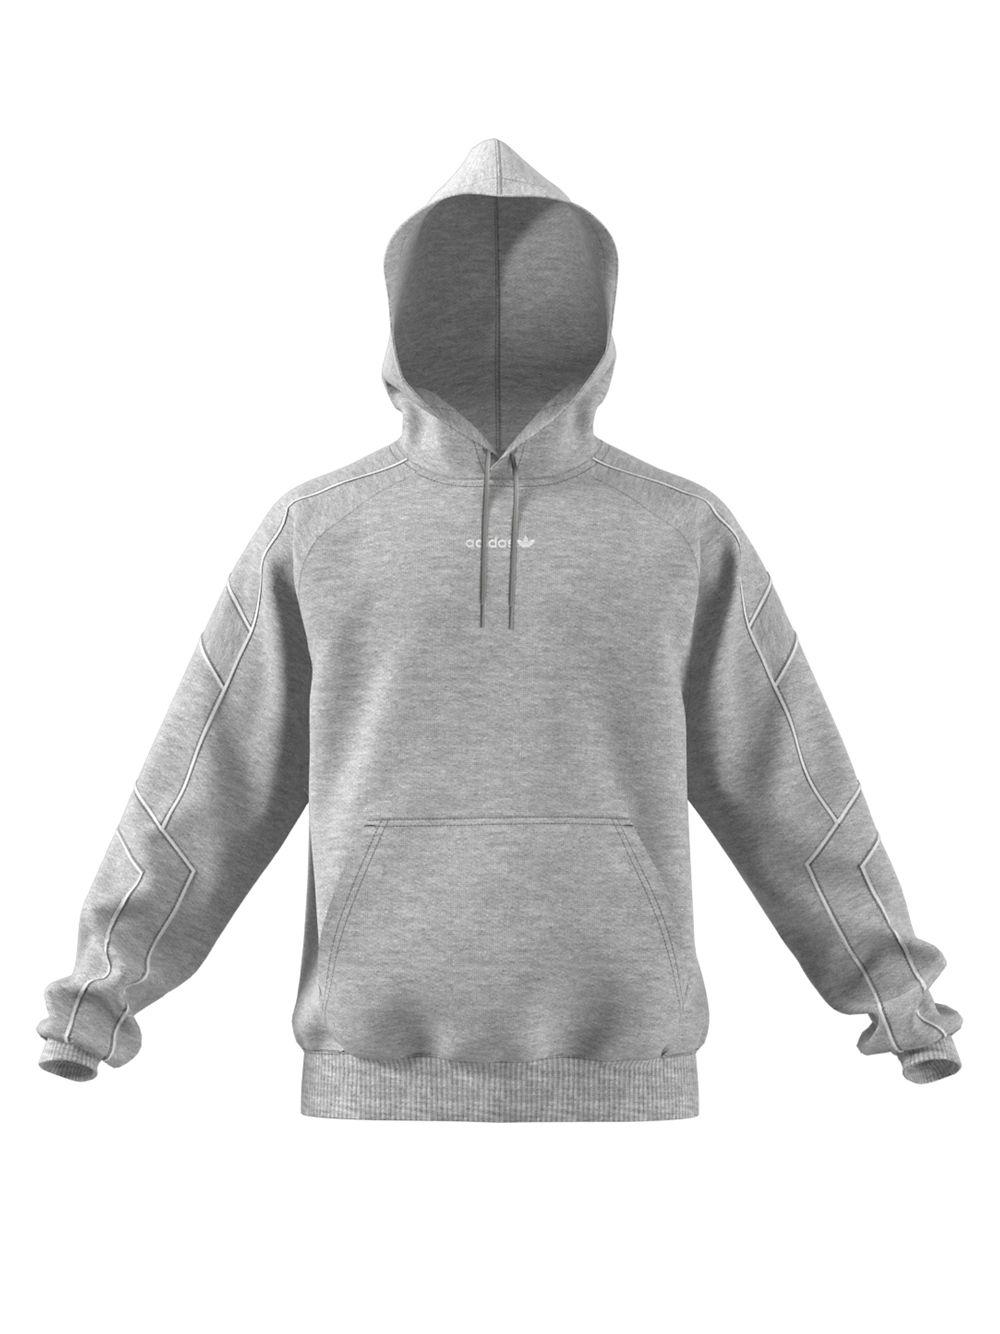 6893bacf8bb5 Lyst - Adidas Equipment Outline Hoodie in Gray for Men